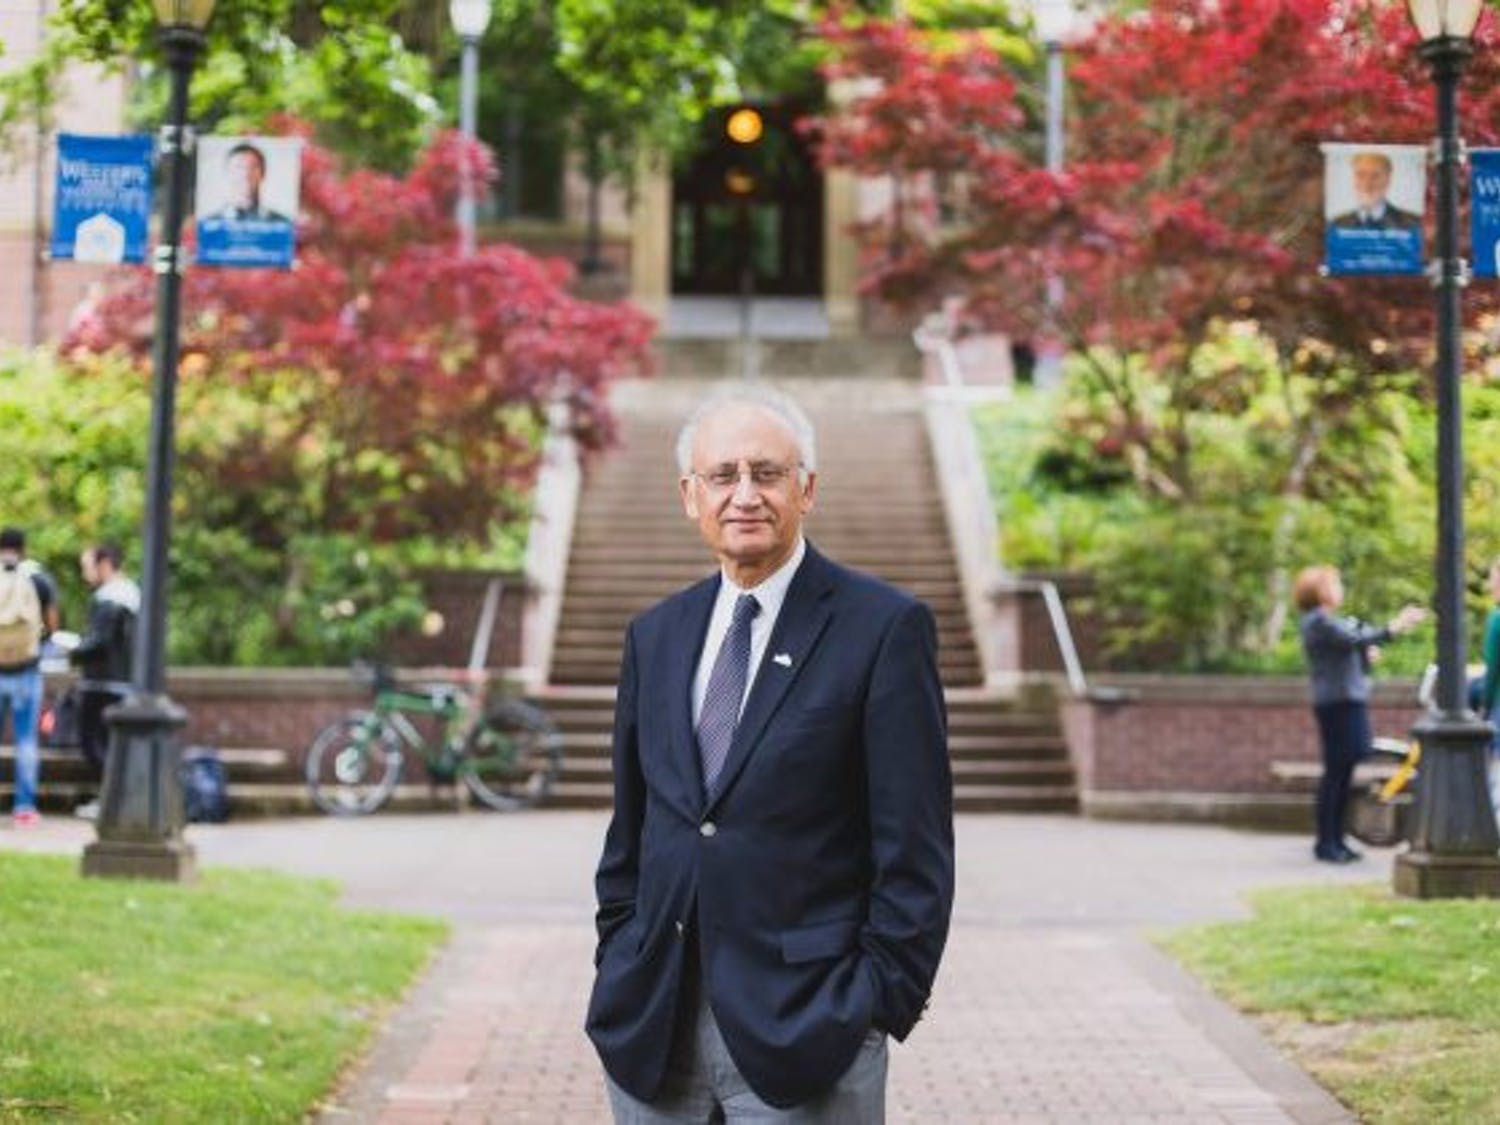 President Randhawa hosted a live Q&A with Western students May 20. In fall 2021, Randhawa will welcome back students to Western's campus. // Photo courtesy of Western's Director of University Communications Paul Cocke.